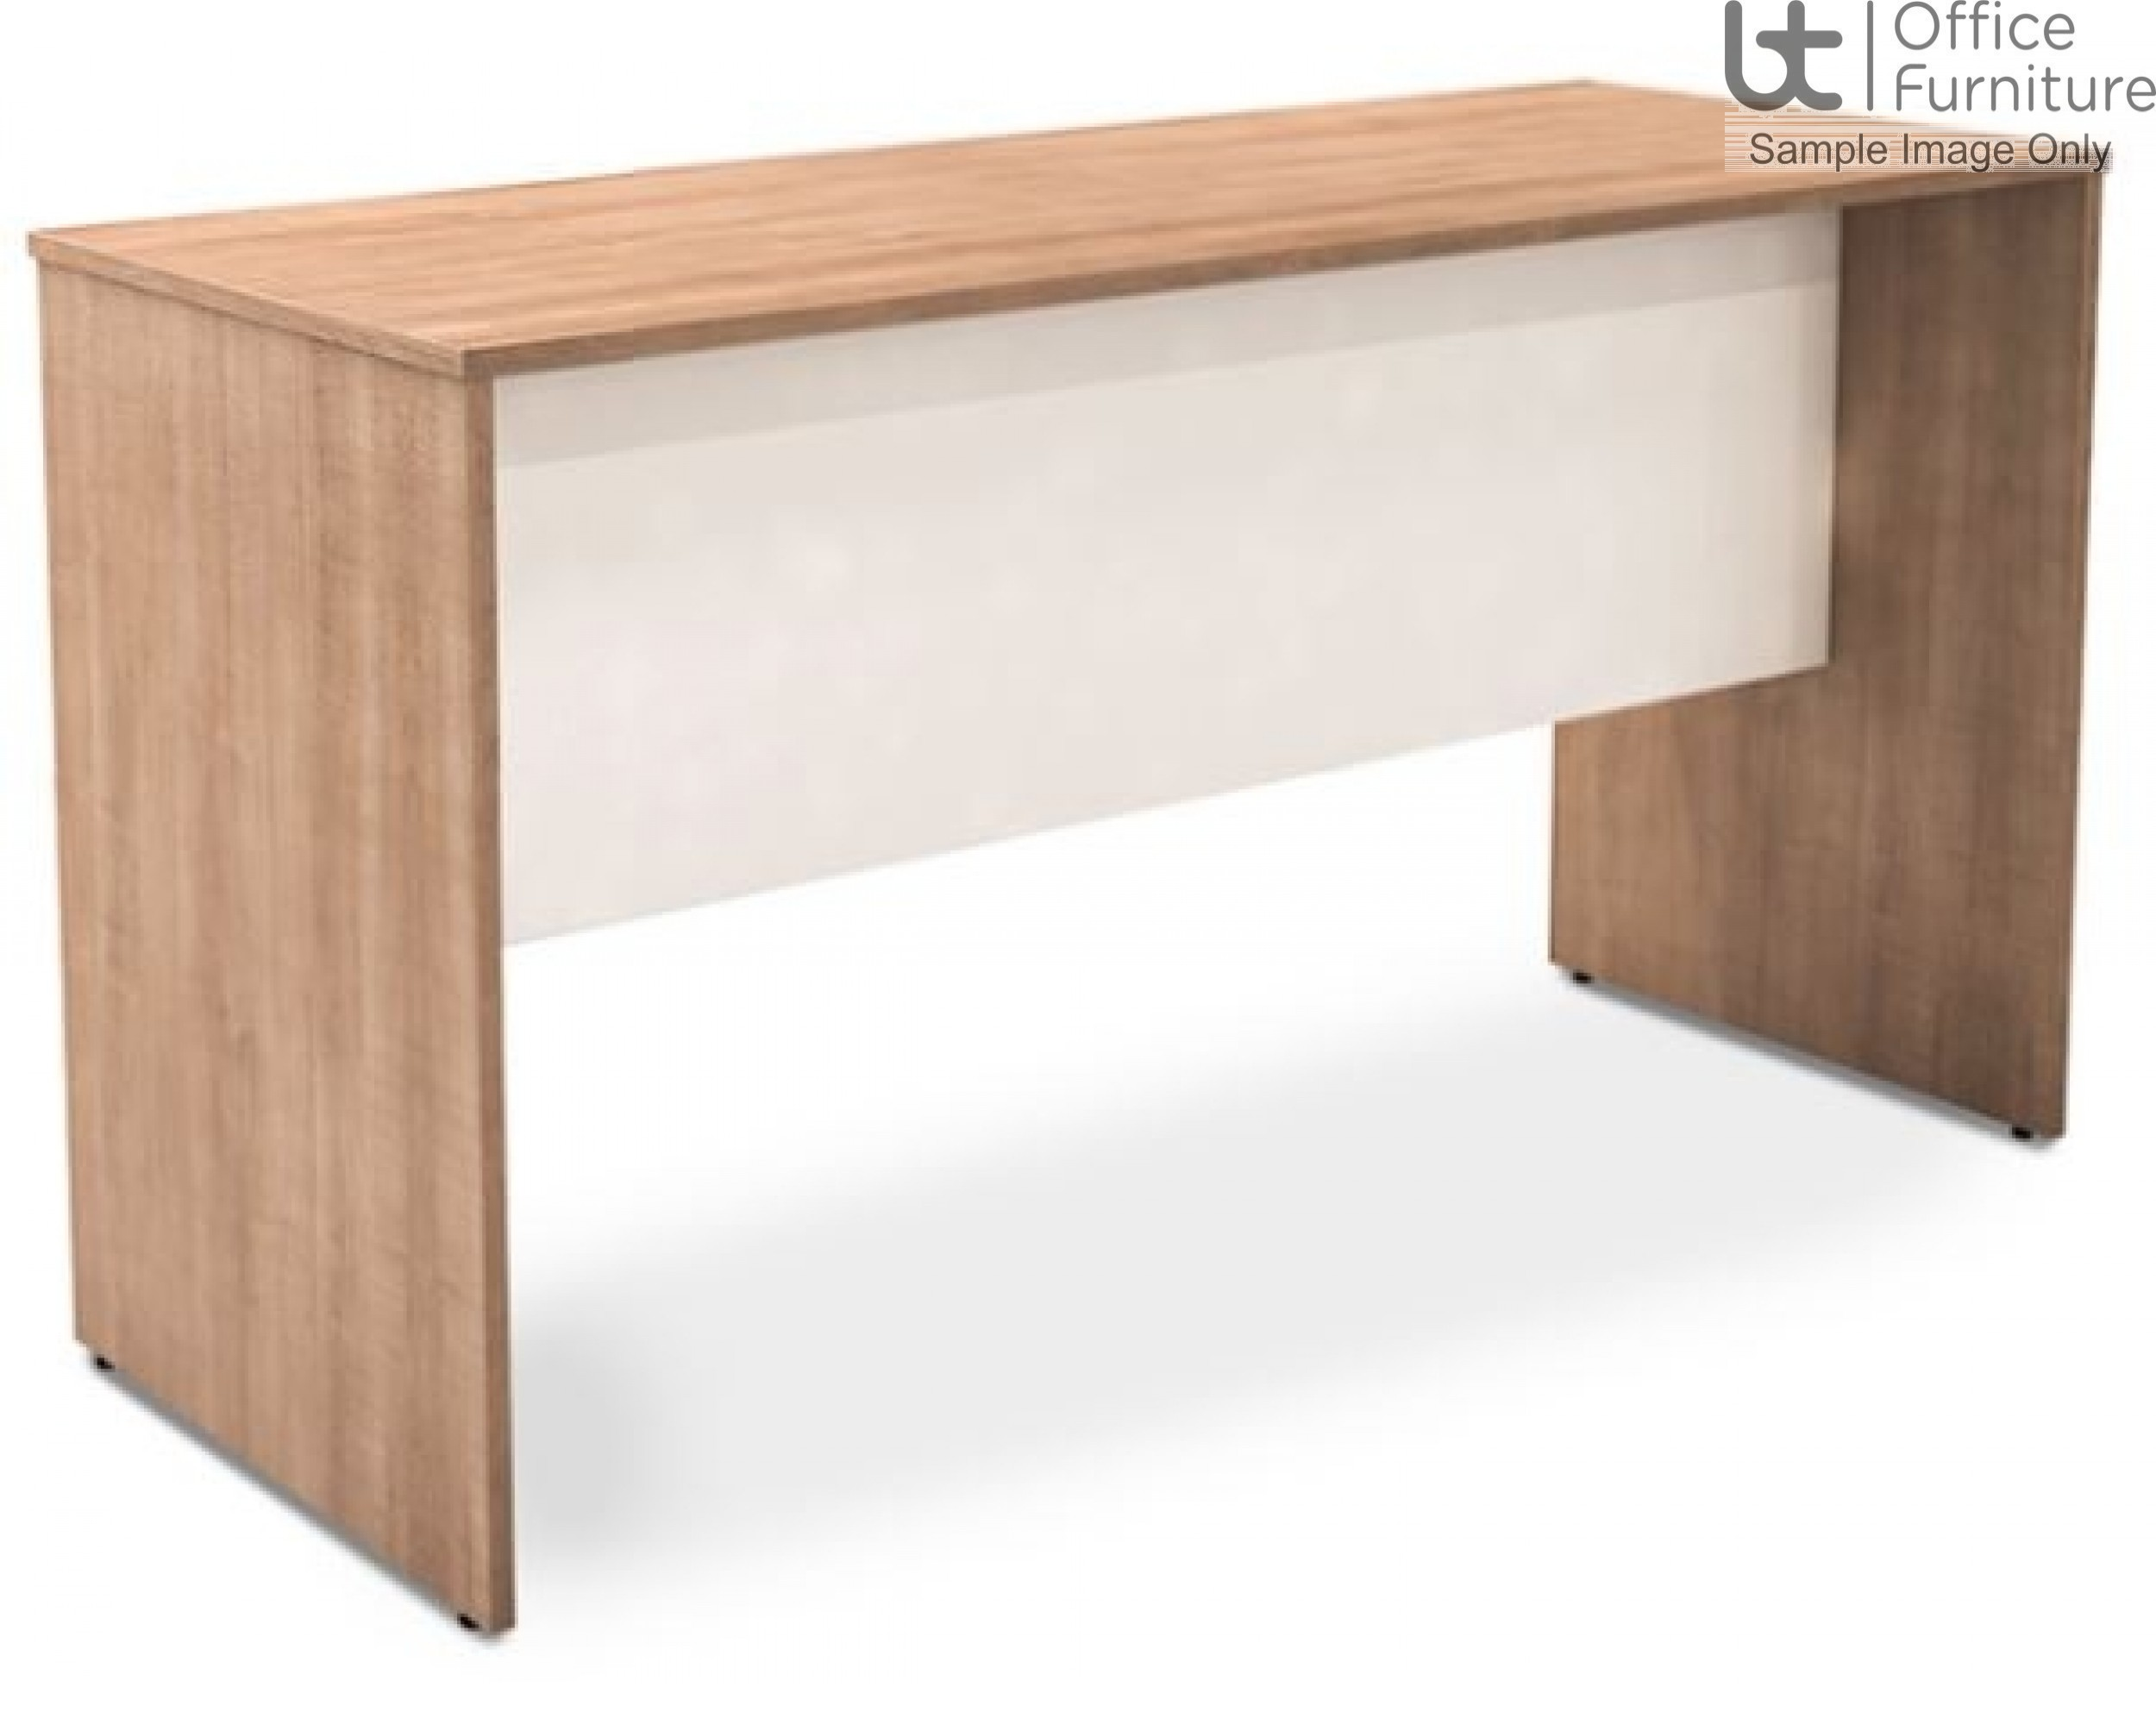 Robust Block Panel Frame Bench High Dining Tables W1800 x D800 x H1100mm